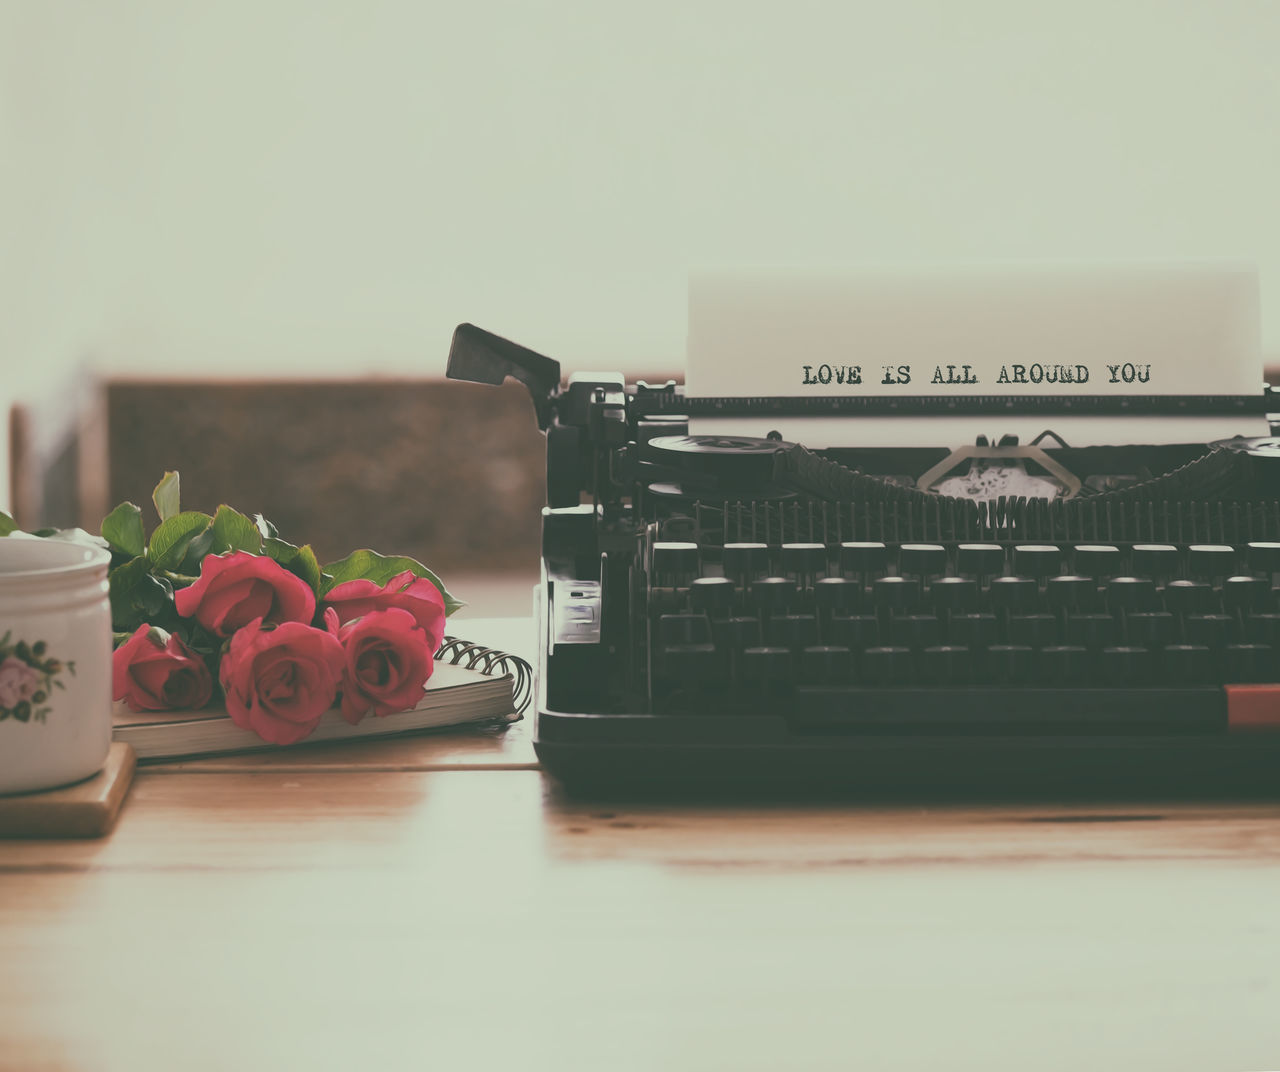 Old typewriter on workplace with vintage color style Flower Love Love Letters Old Style Old Typewriter Old-fashioned Romance Table Typewriter Vintage Photo Vintage Style